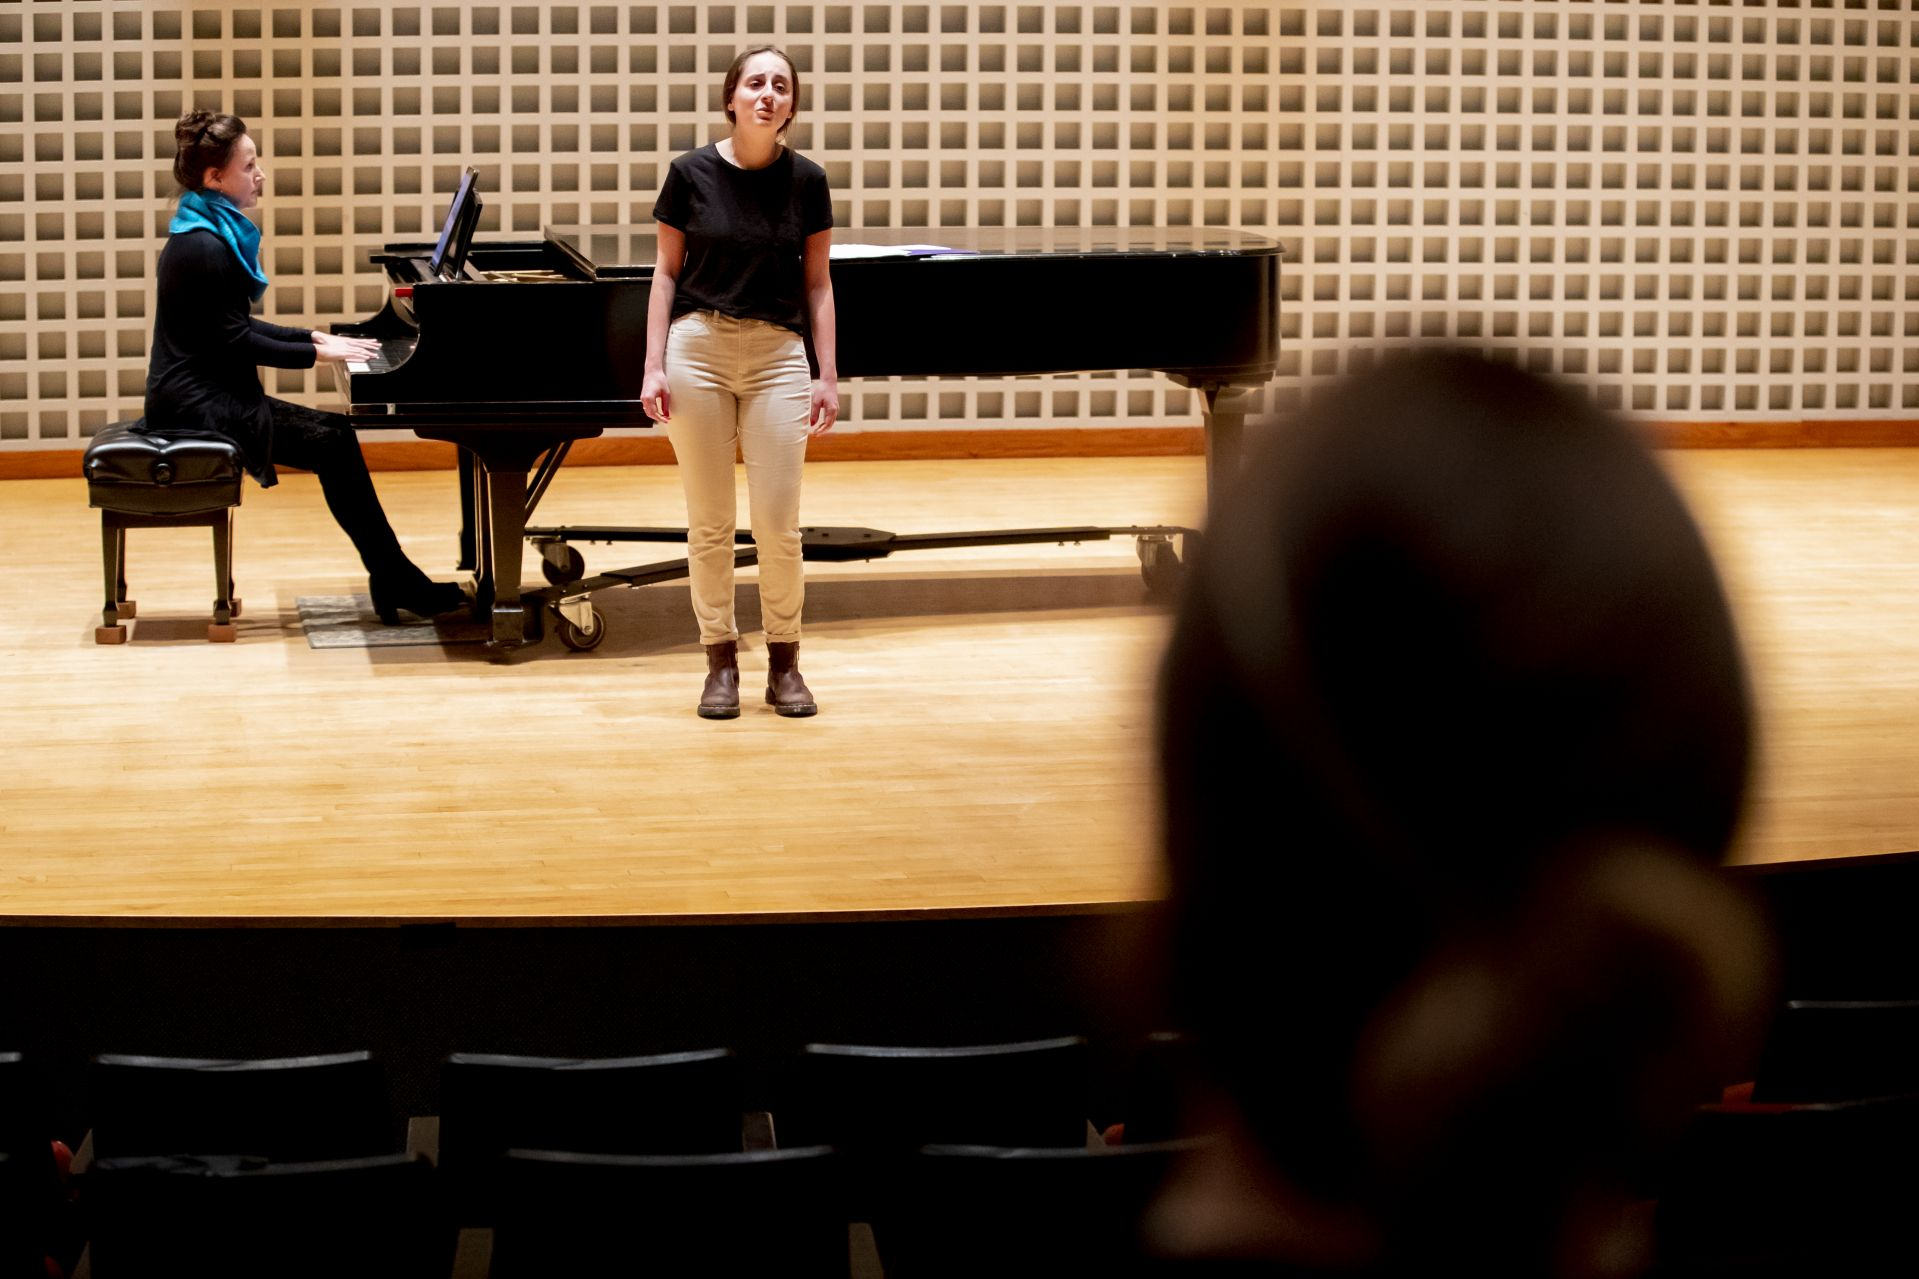 """Accompanied by pianist Bridget Convey, Clara Porter '22 rehearses """"Journey to the Past"""" from """"Anastasia"""" as Joëlle Morris listens in the Olin Arts Center Concert Hall. (Phyllis Graber Jensen/Bates College)"""